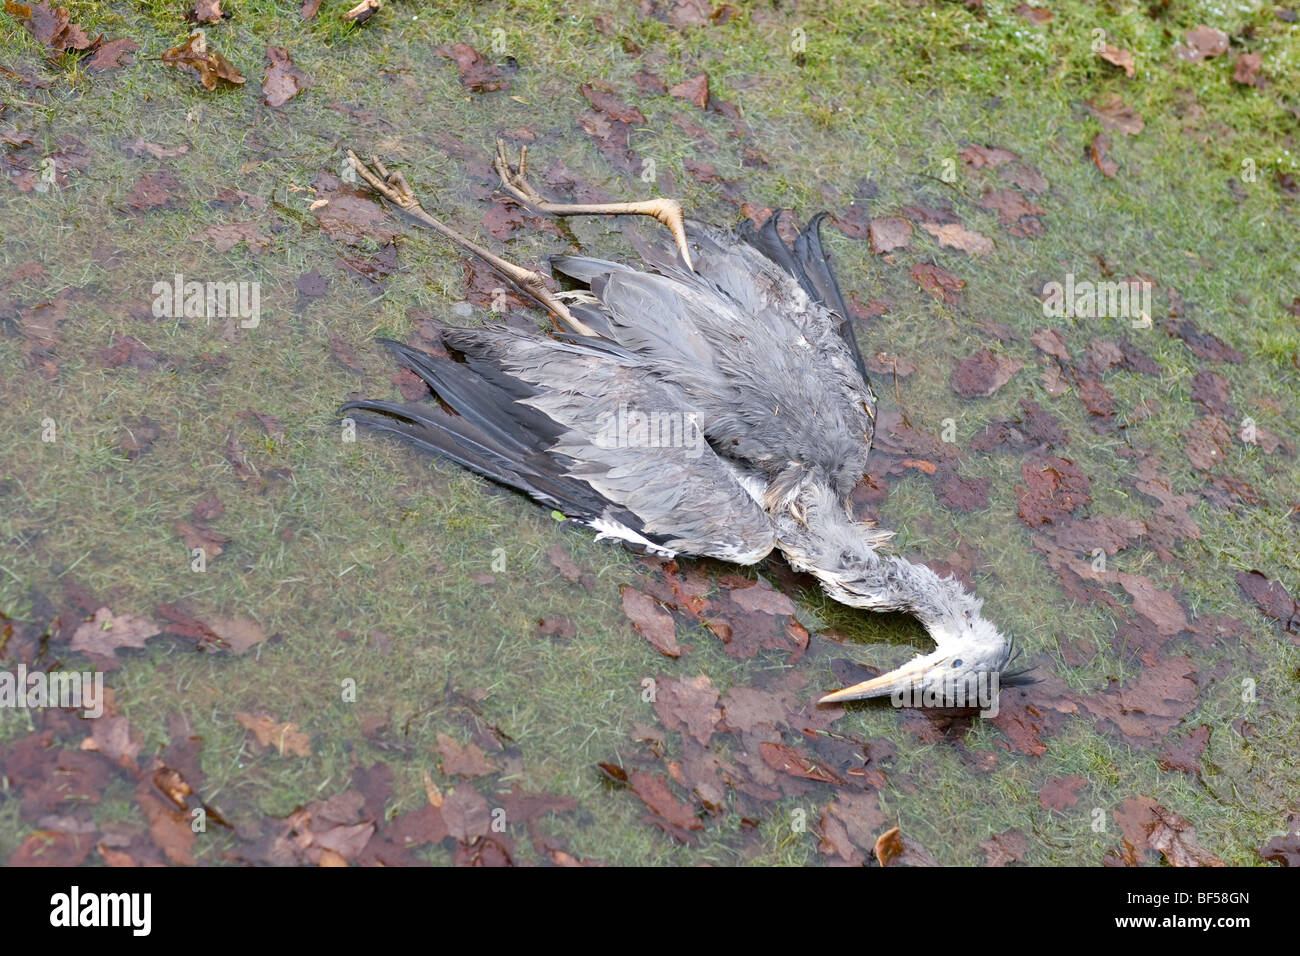 Grey Heron (Ardea cinerea). Death caused by starvation and winter cold (hypothermia). - Stock Image